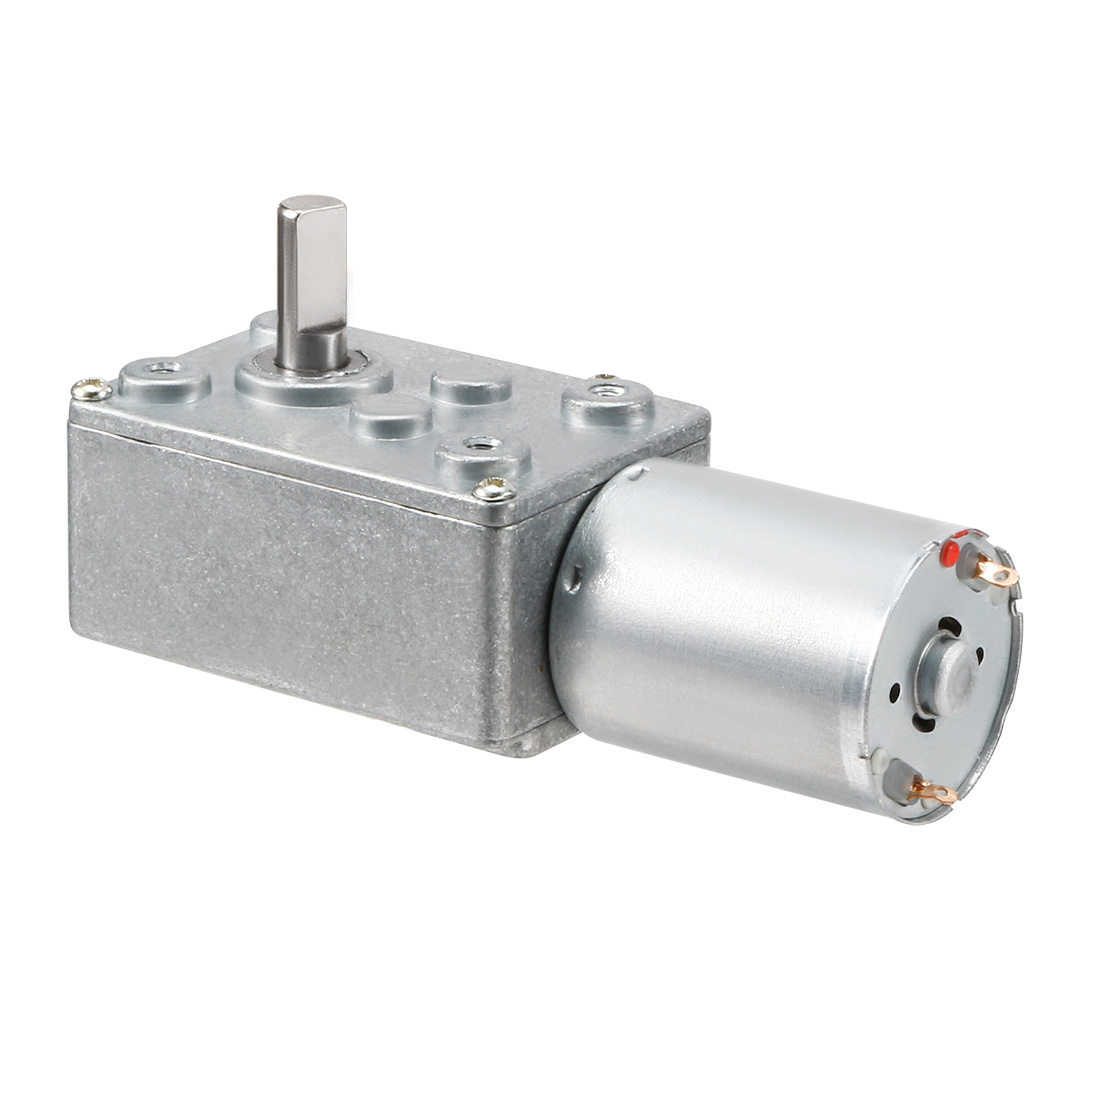 DC 12V 9RPM 6mm Shaft High Torque Turbine Worm Geared Motor